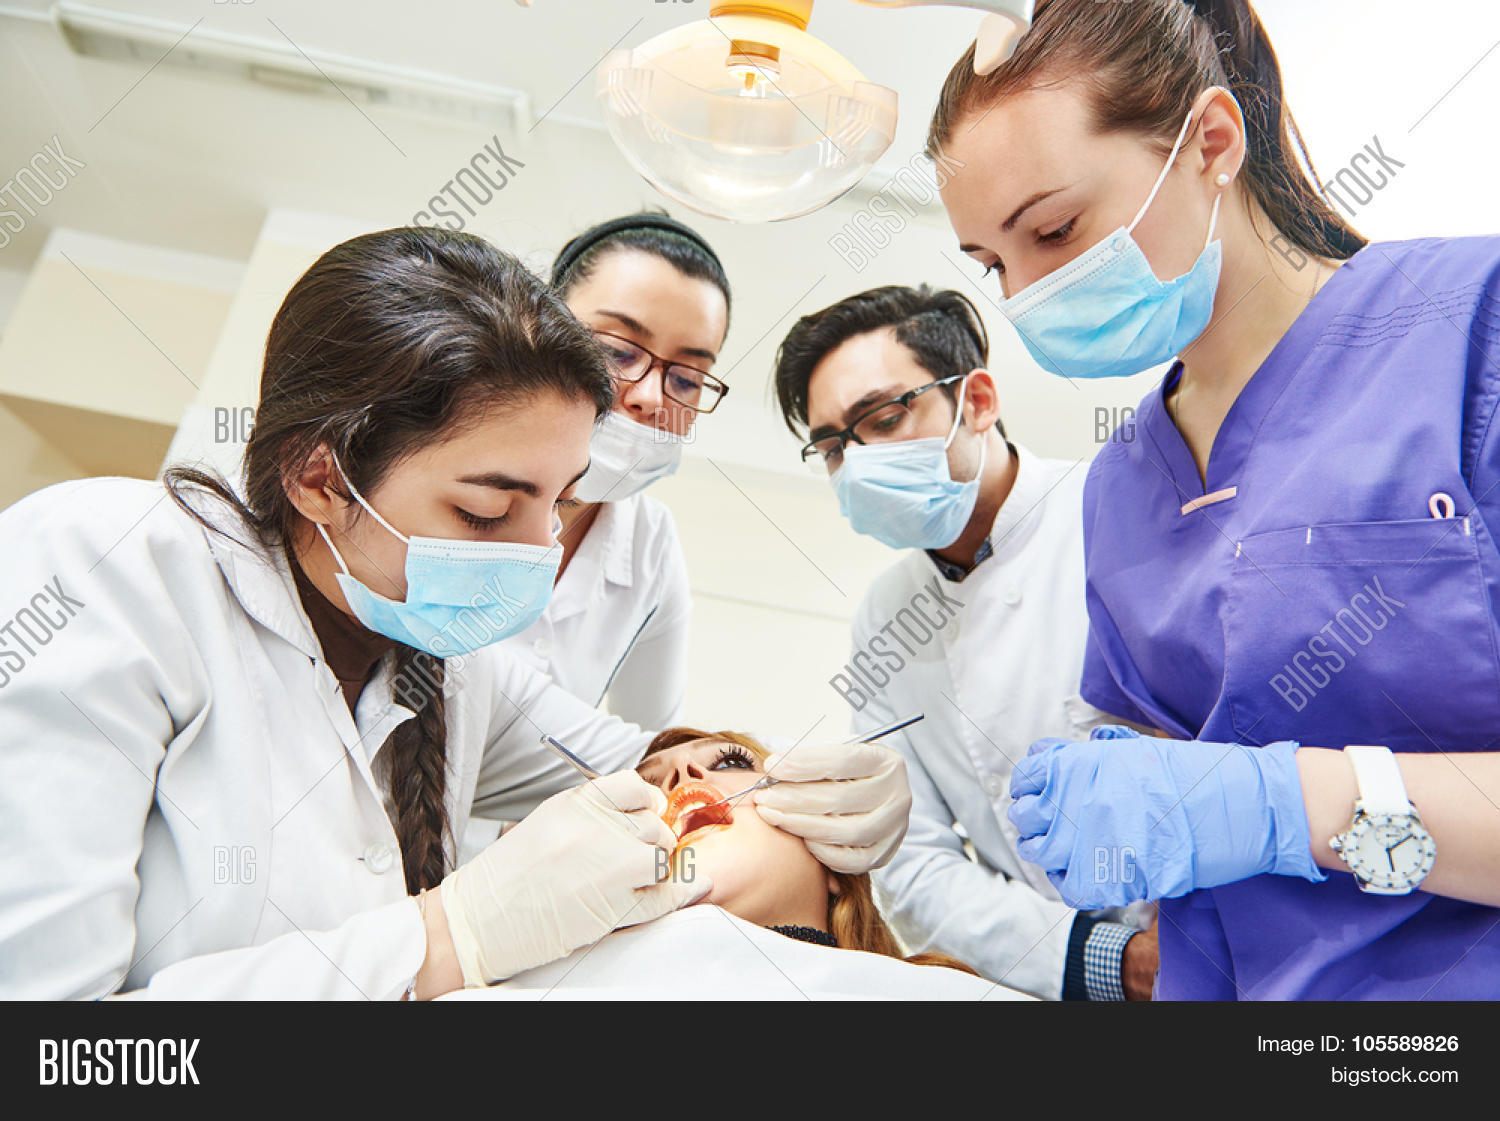 Dentistry Education  Image & Photo (Free Trial) | Bigstock